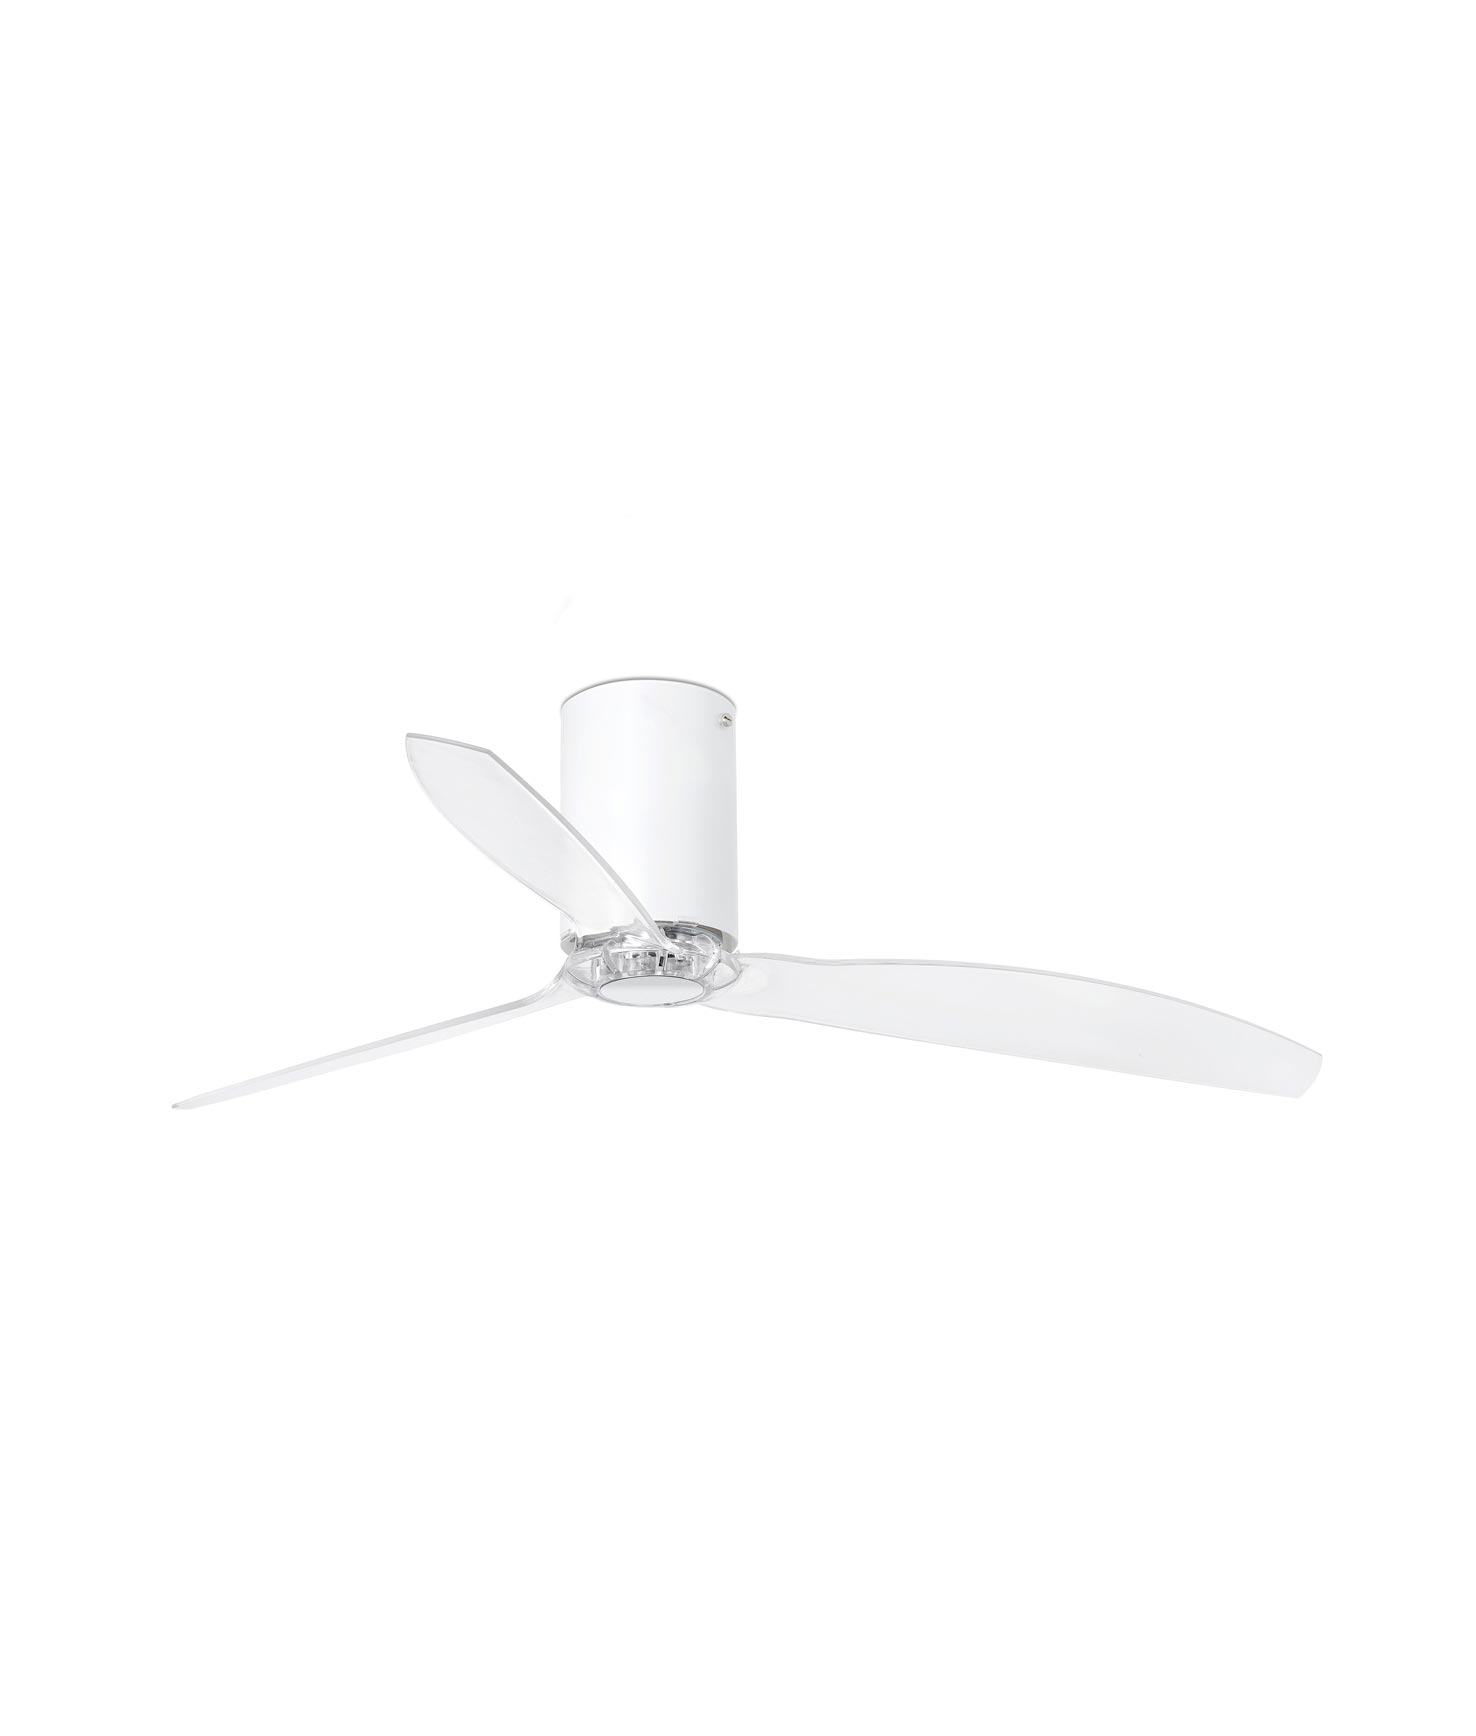 Ventilador blanco y transparente MINI TUBE FAN